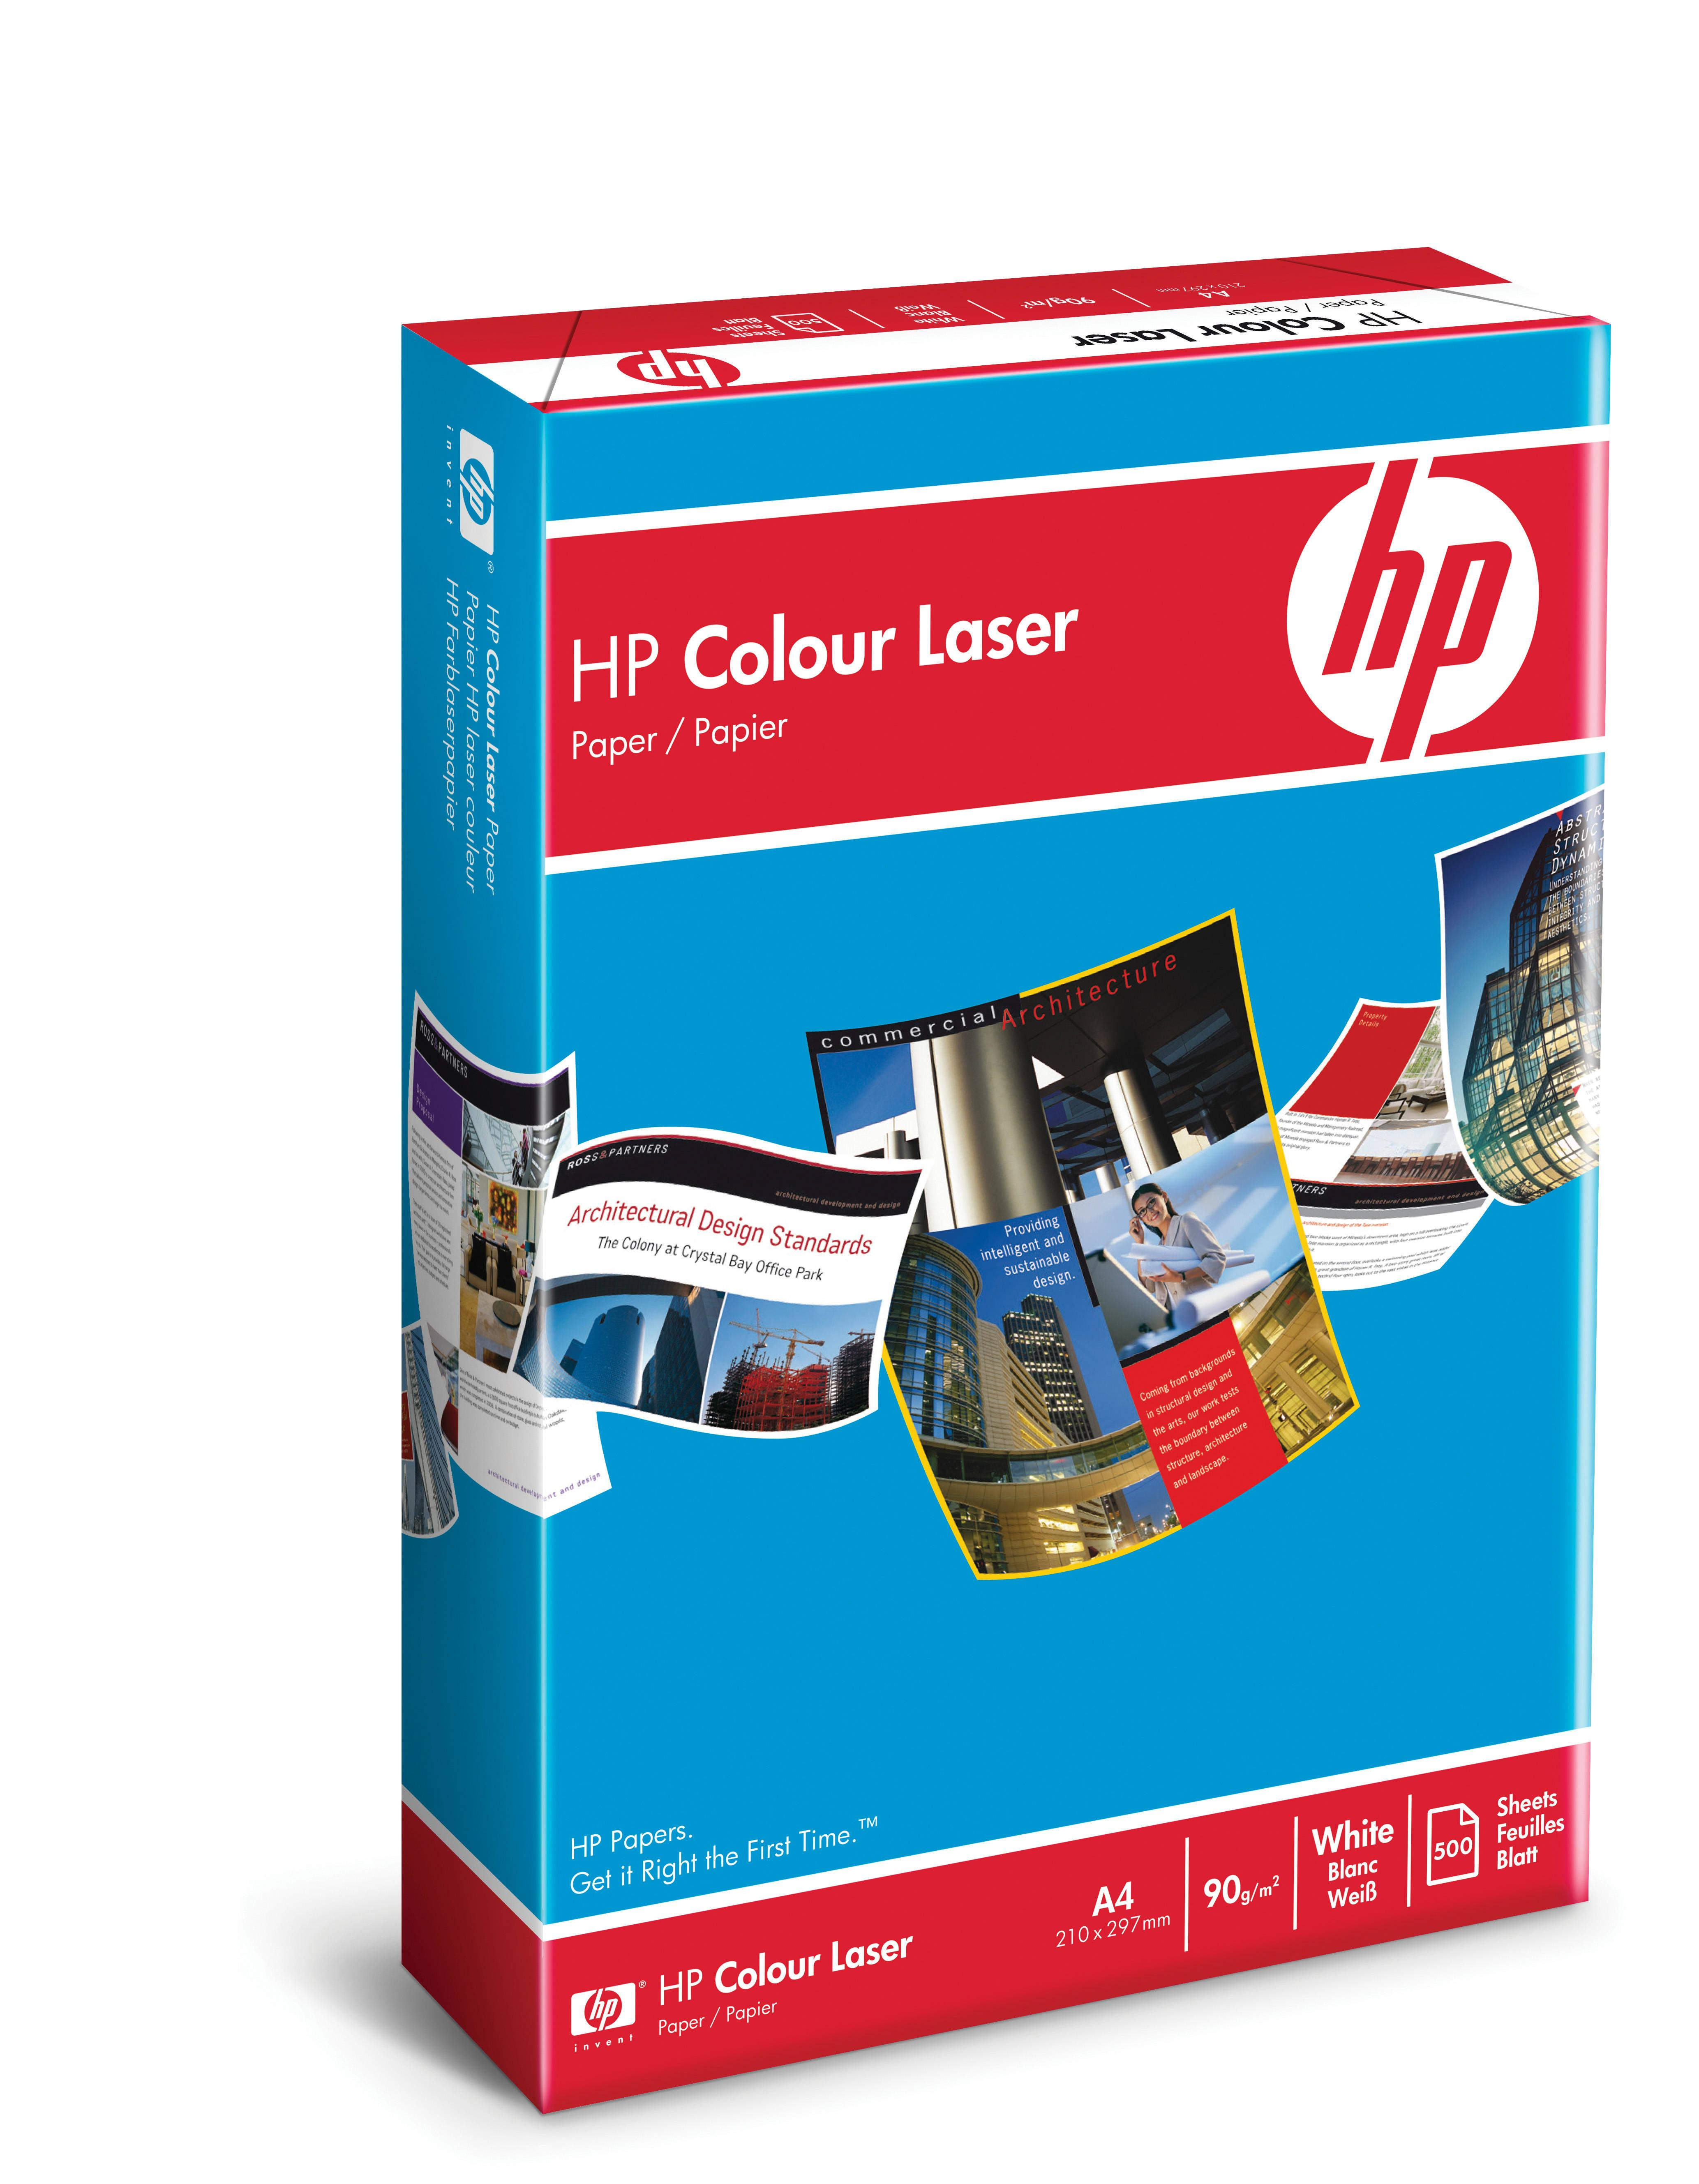 Kopieringspapper HP Colour Laser A4 90g 500/FP